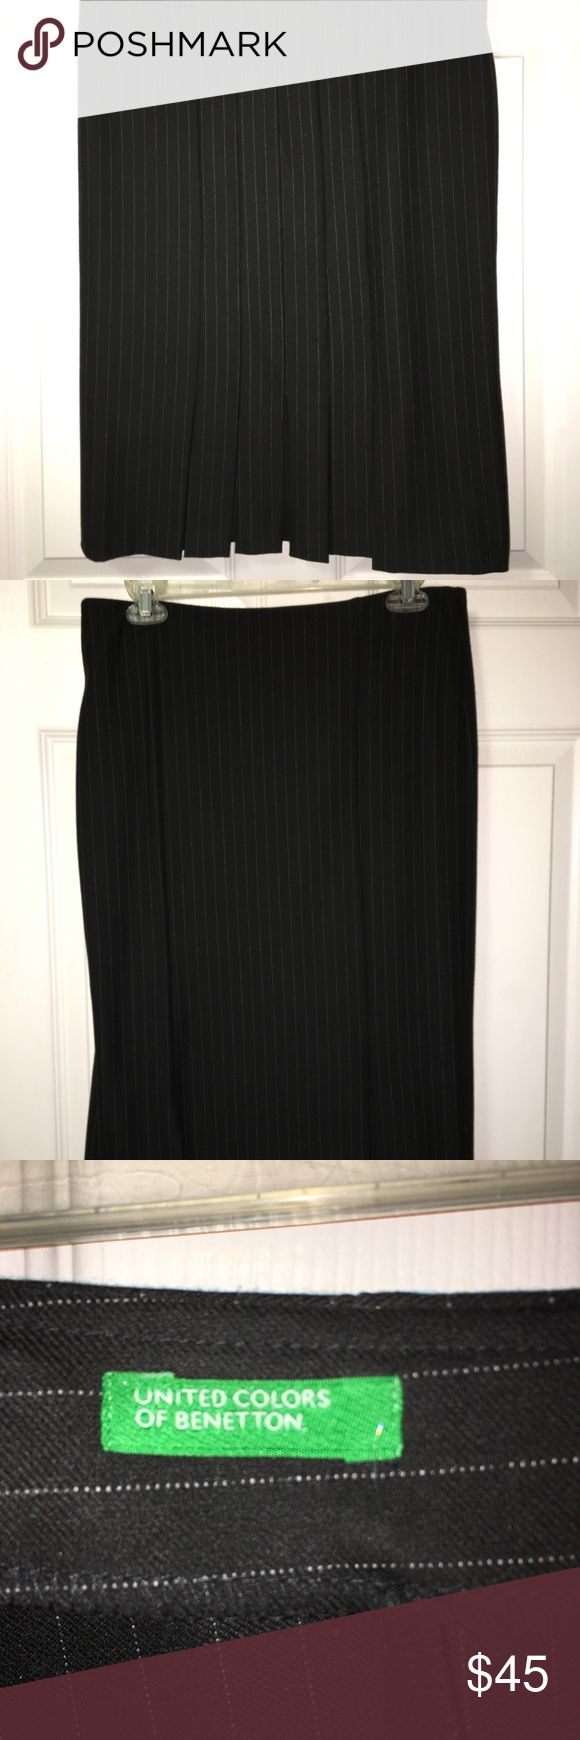 United Colors of Benetton Black Pinstripe Skirt EU United Colors of Benetton Black -Taglia 42 (Size 4-6) - 26 ½ inch length - 16 inch waist - 6 ½ inch pleats from the bottom United Colors Of Benetton Skirts Midi